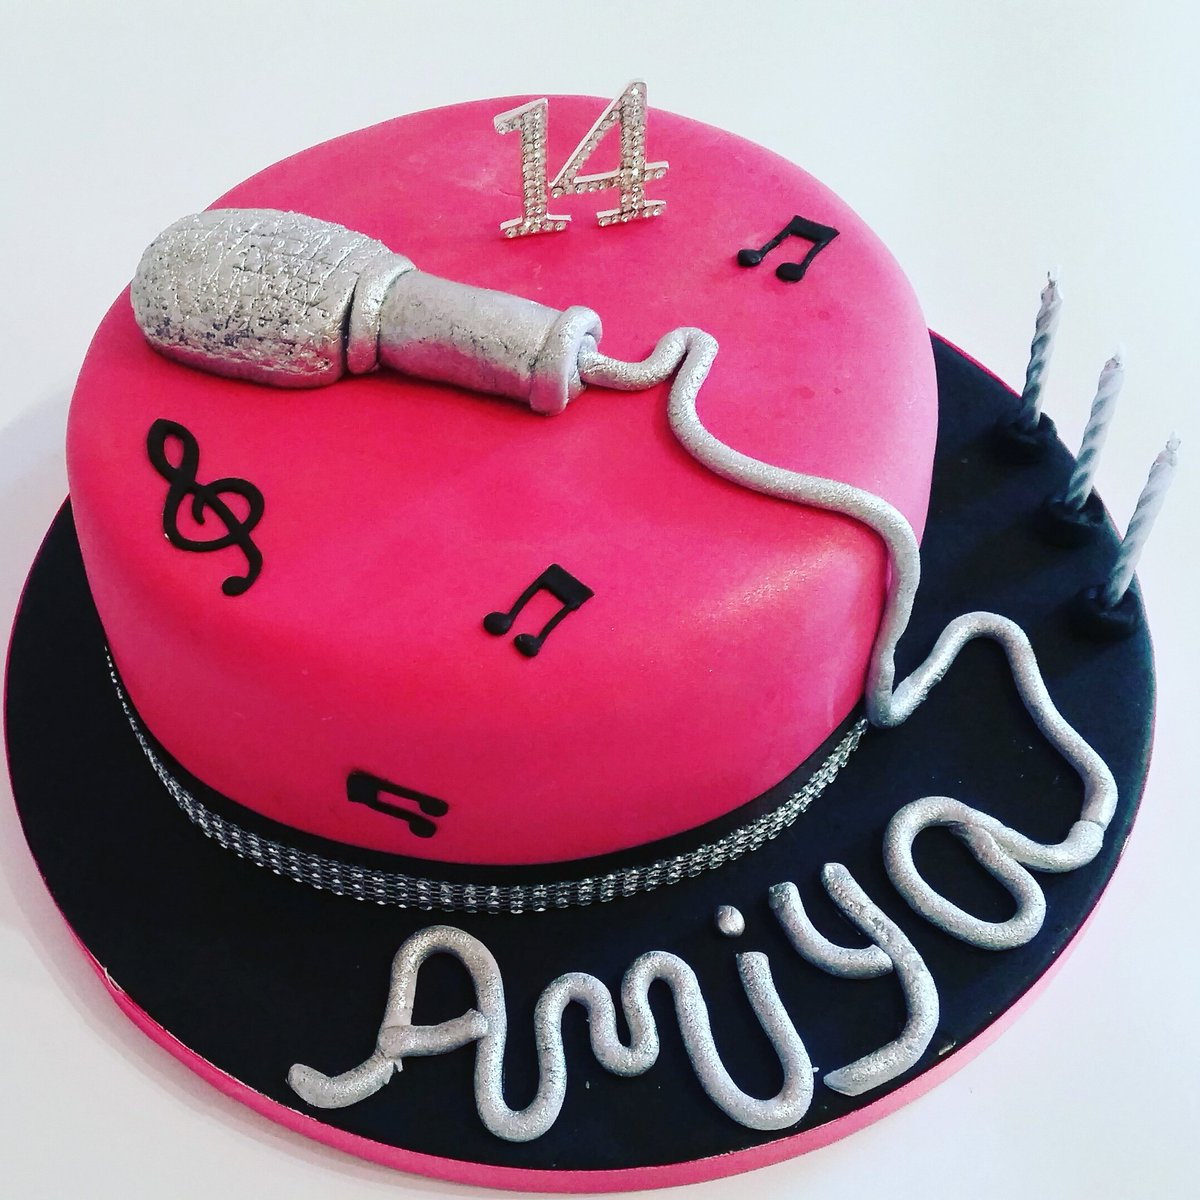 Awesome Delights By Cynthia On Twitter A Cool Cake For A Musical Teen Birthday Cards Printable Trancafe Filternl